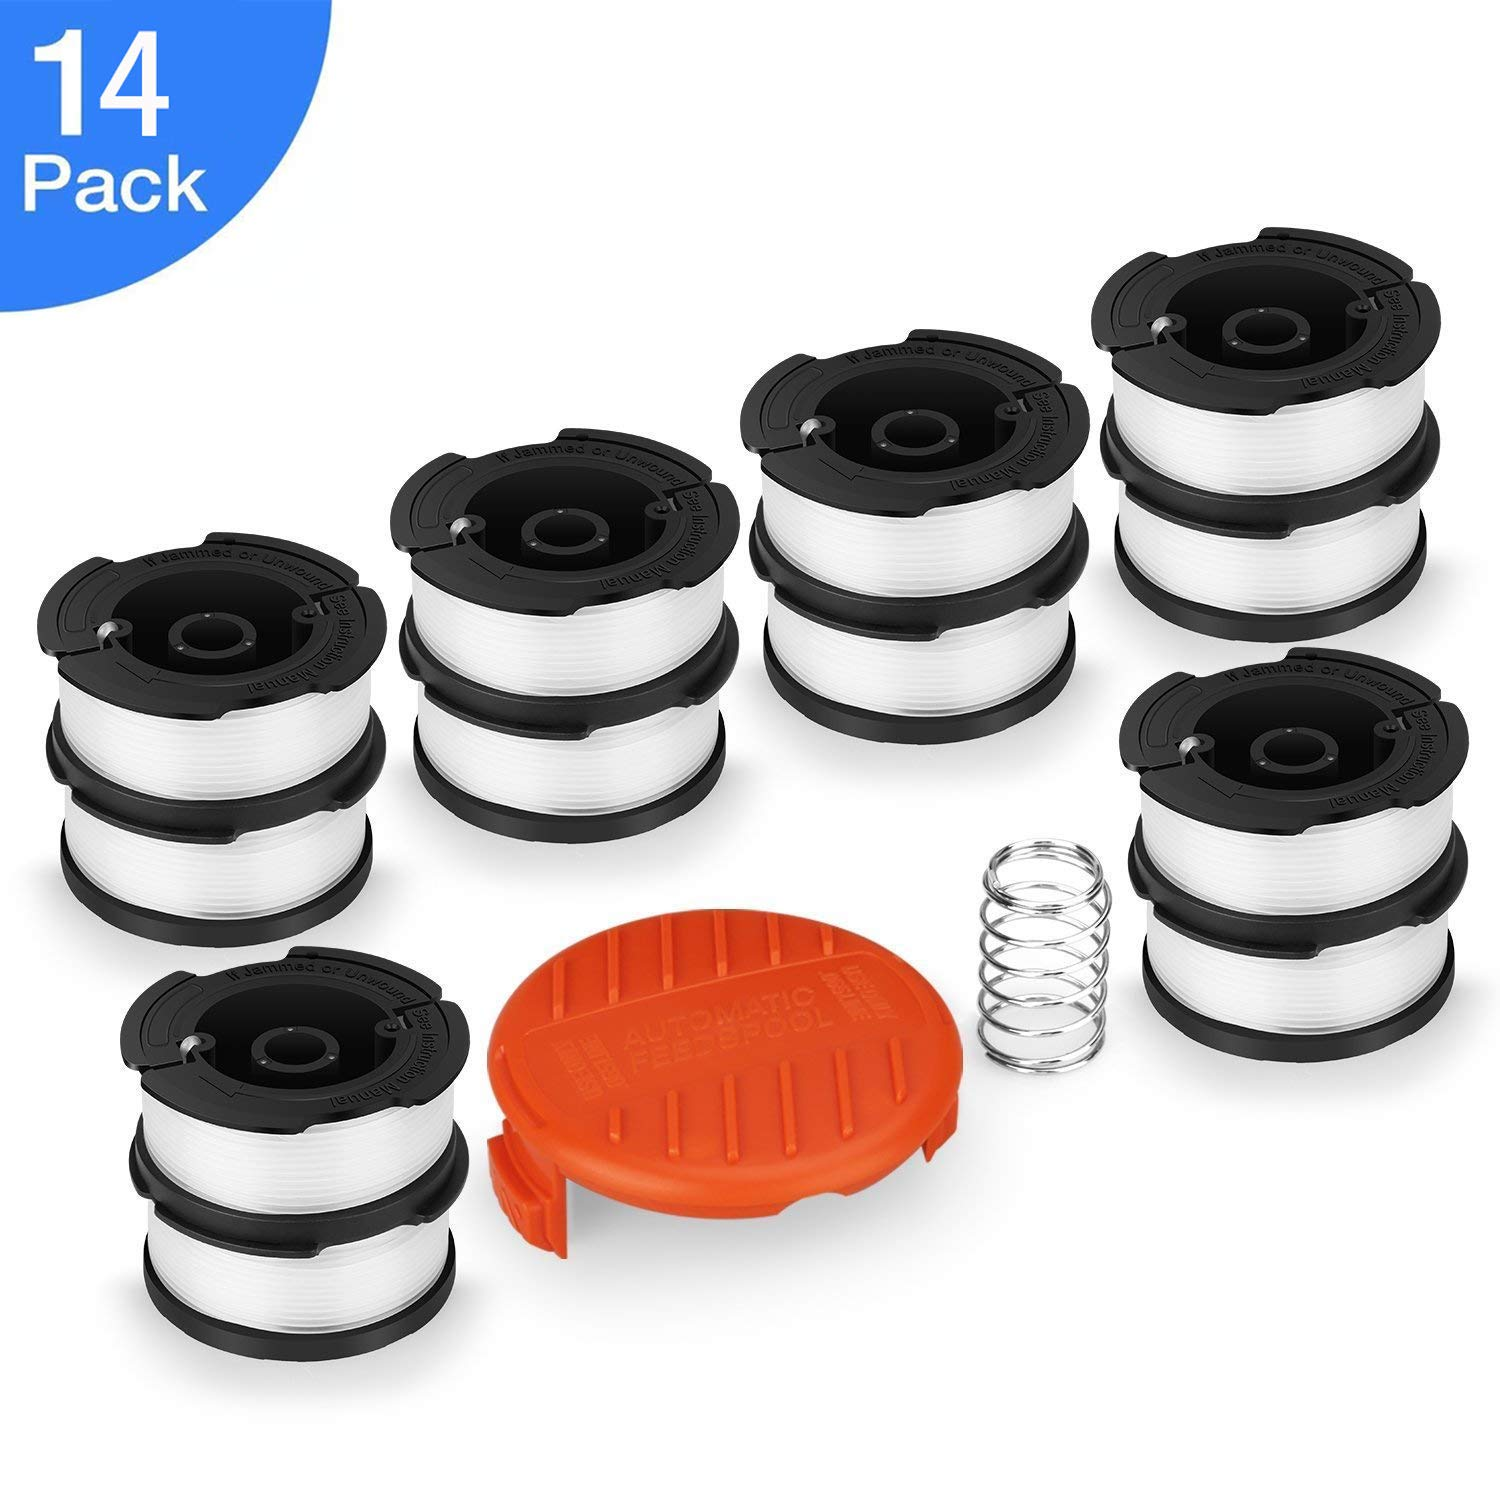 "Yoelike [14 Pack]Line String Trimmer Replacement Spool, 30ft 0.065"" Autofeed Weed Eater String, Compatible with Black+Decker String Trimmers(12 Replacement Spool, 1 Trimmer Cap, 1 Spring)"